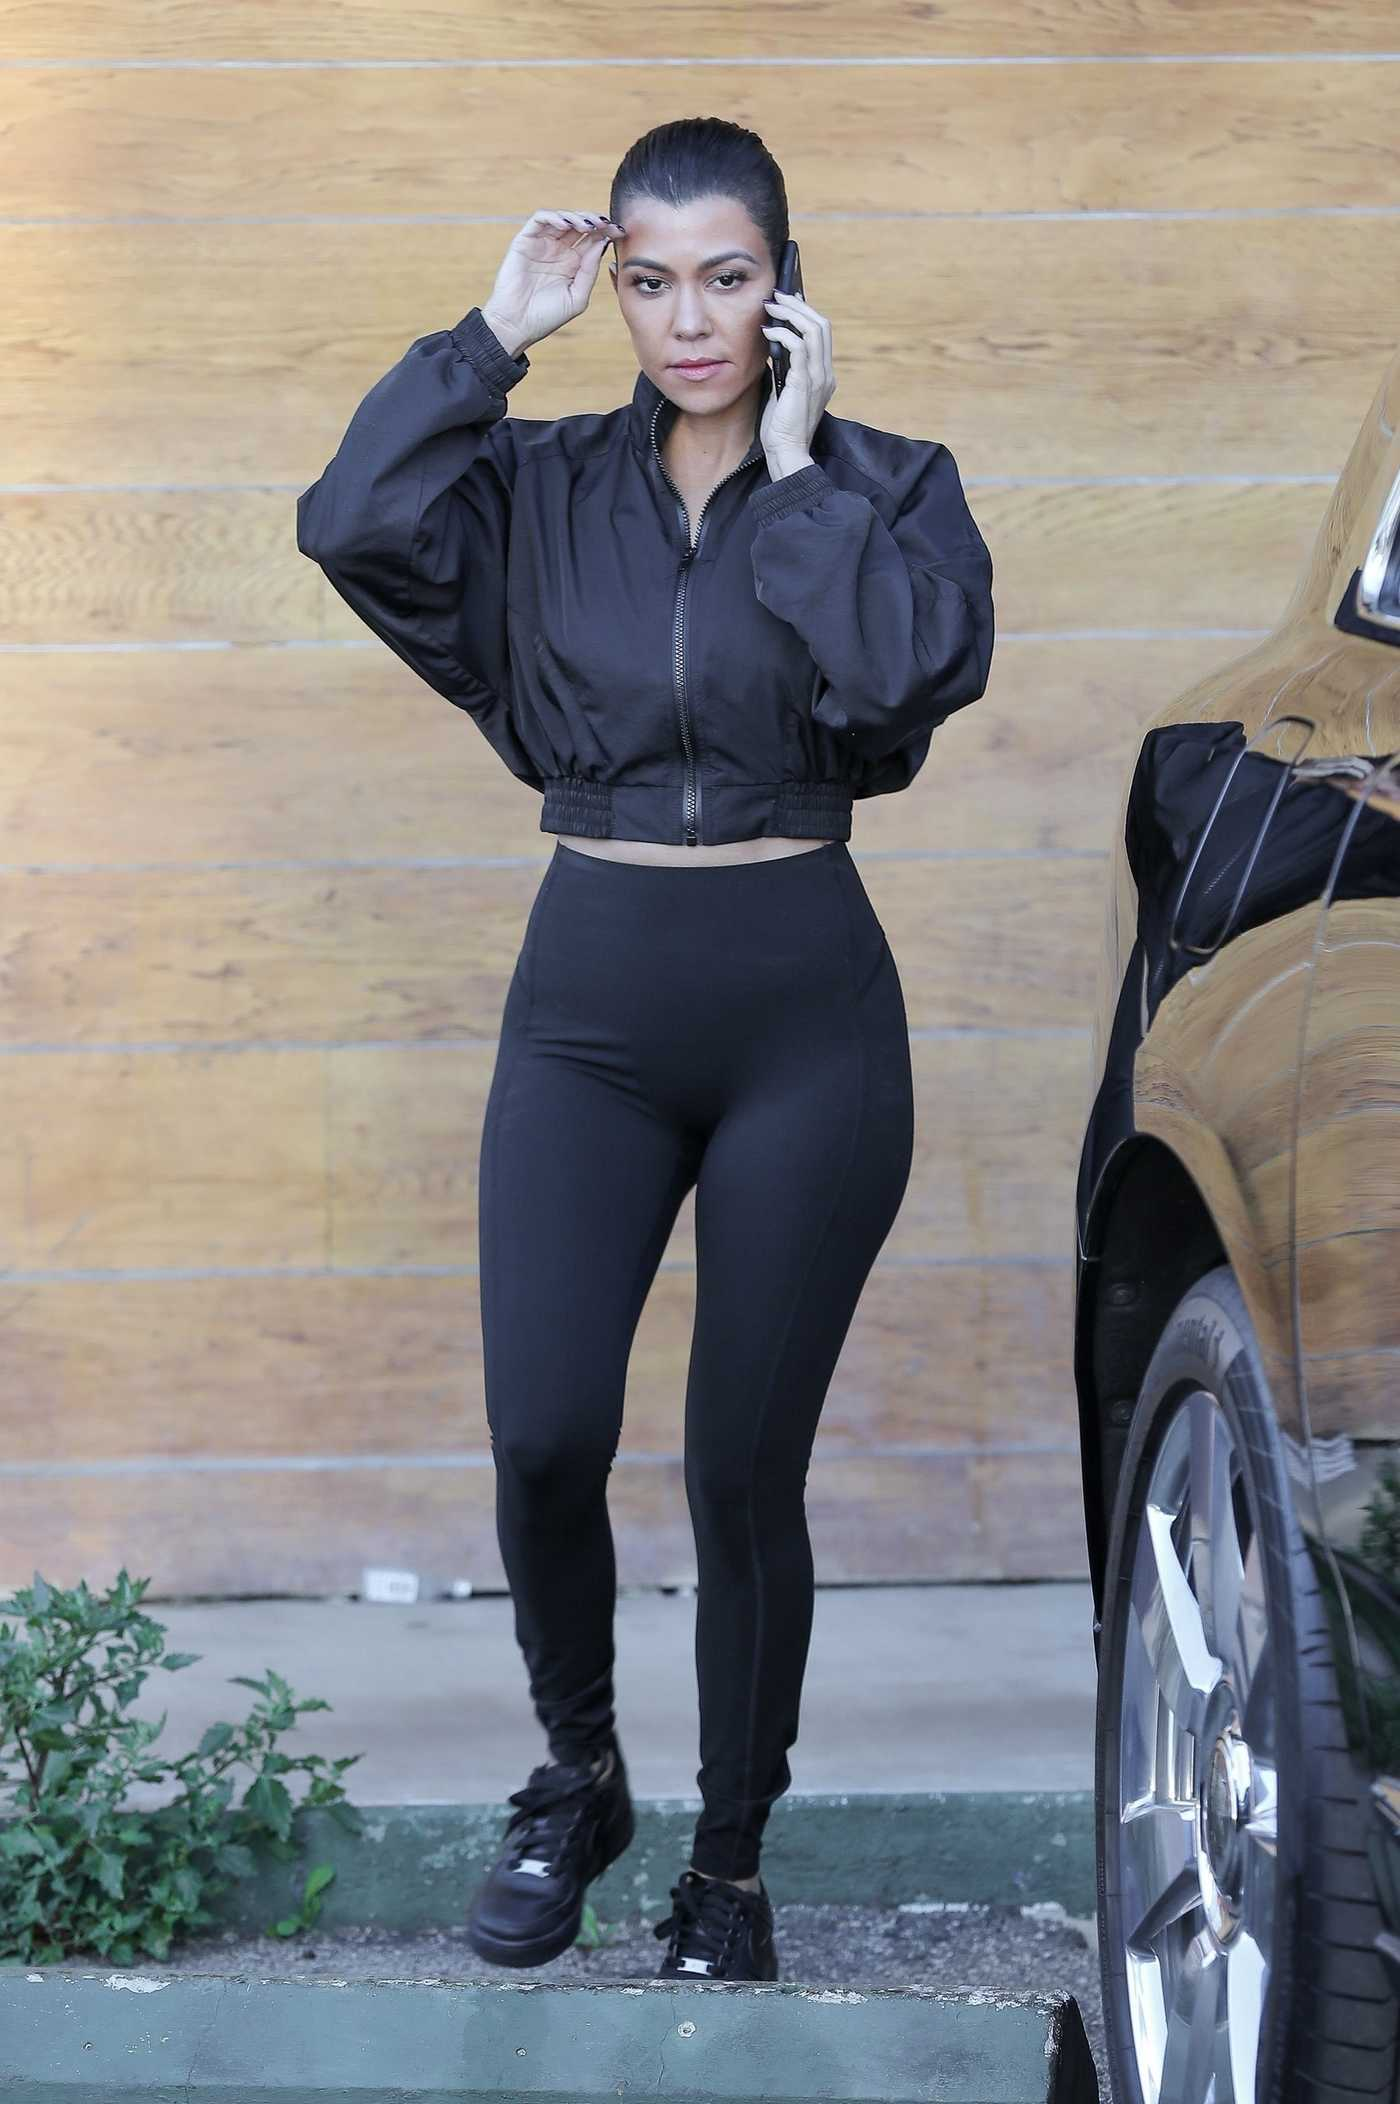 Kourtney Kardashian in a Short Black Jacket Was Seen Out in Los Angeles 01/31/2019